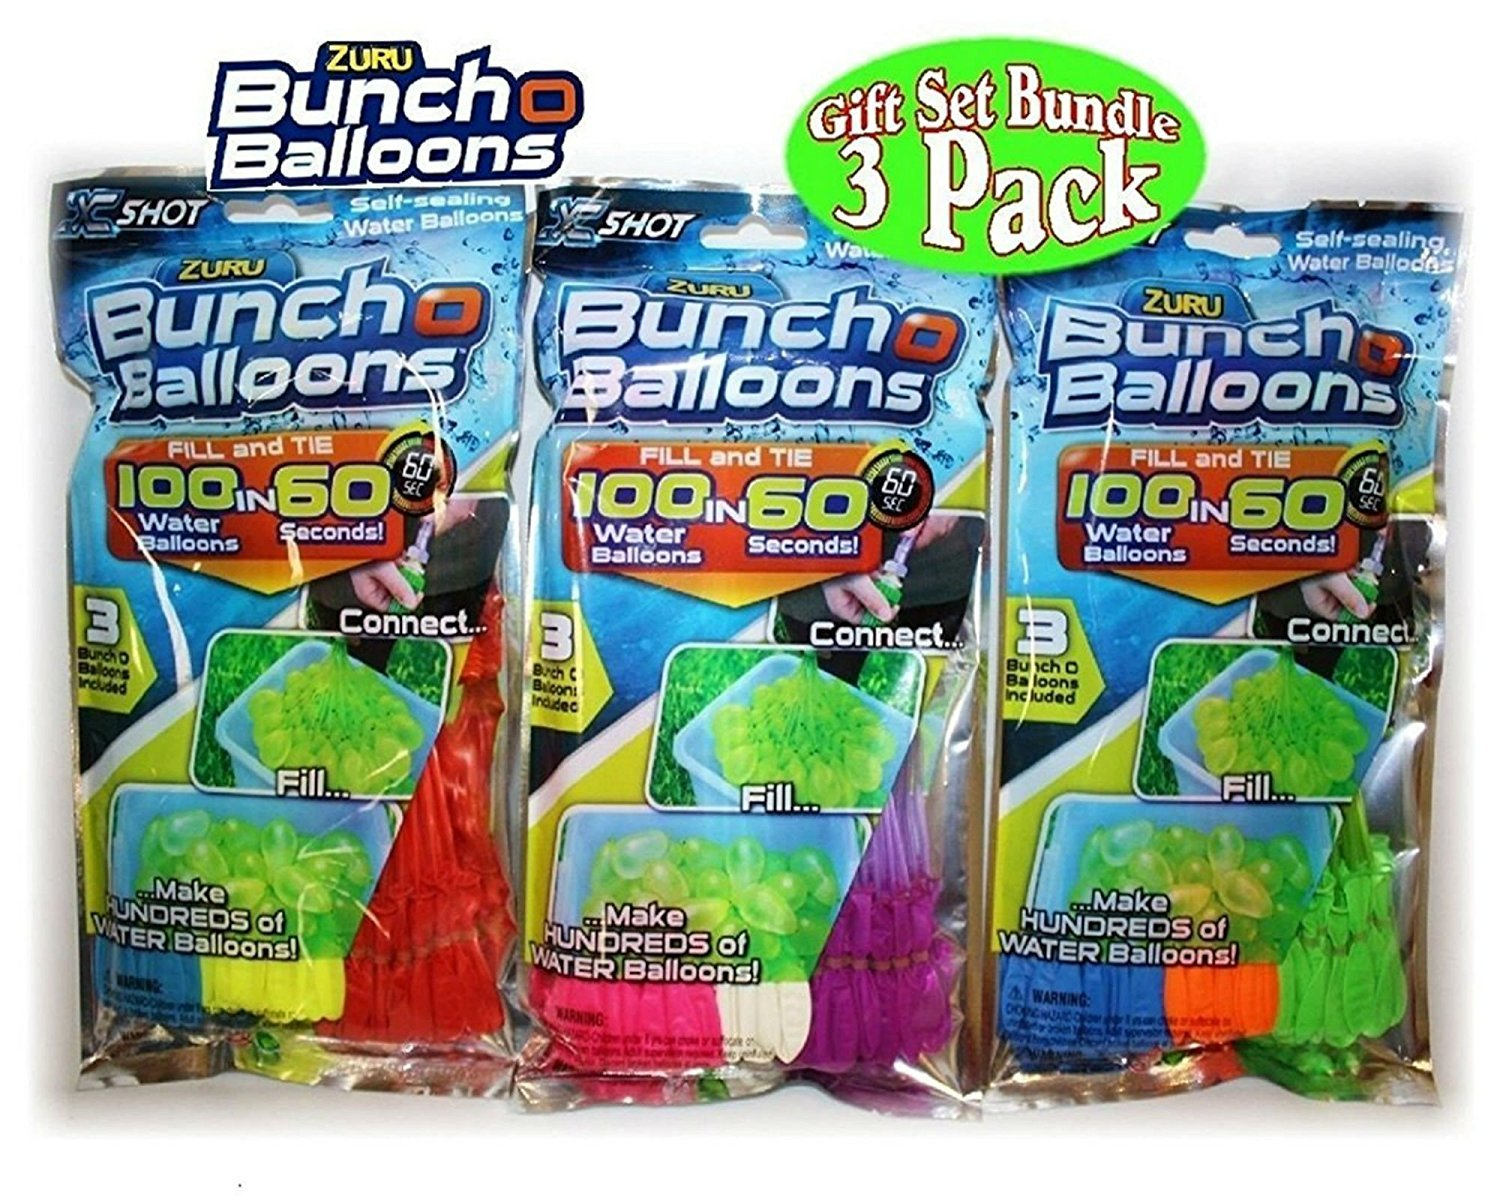 Zuru Bunch O Balloons Instant 100 Self-Sealing Water Balloons Complete Gift Set Bundle, 3 Piece (300 Balloons Total) ch-balloon01